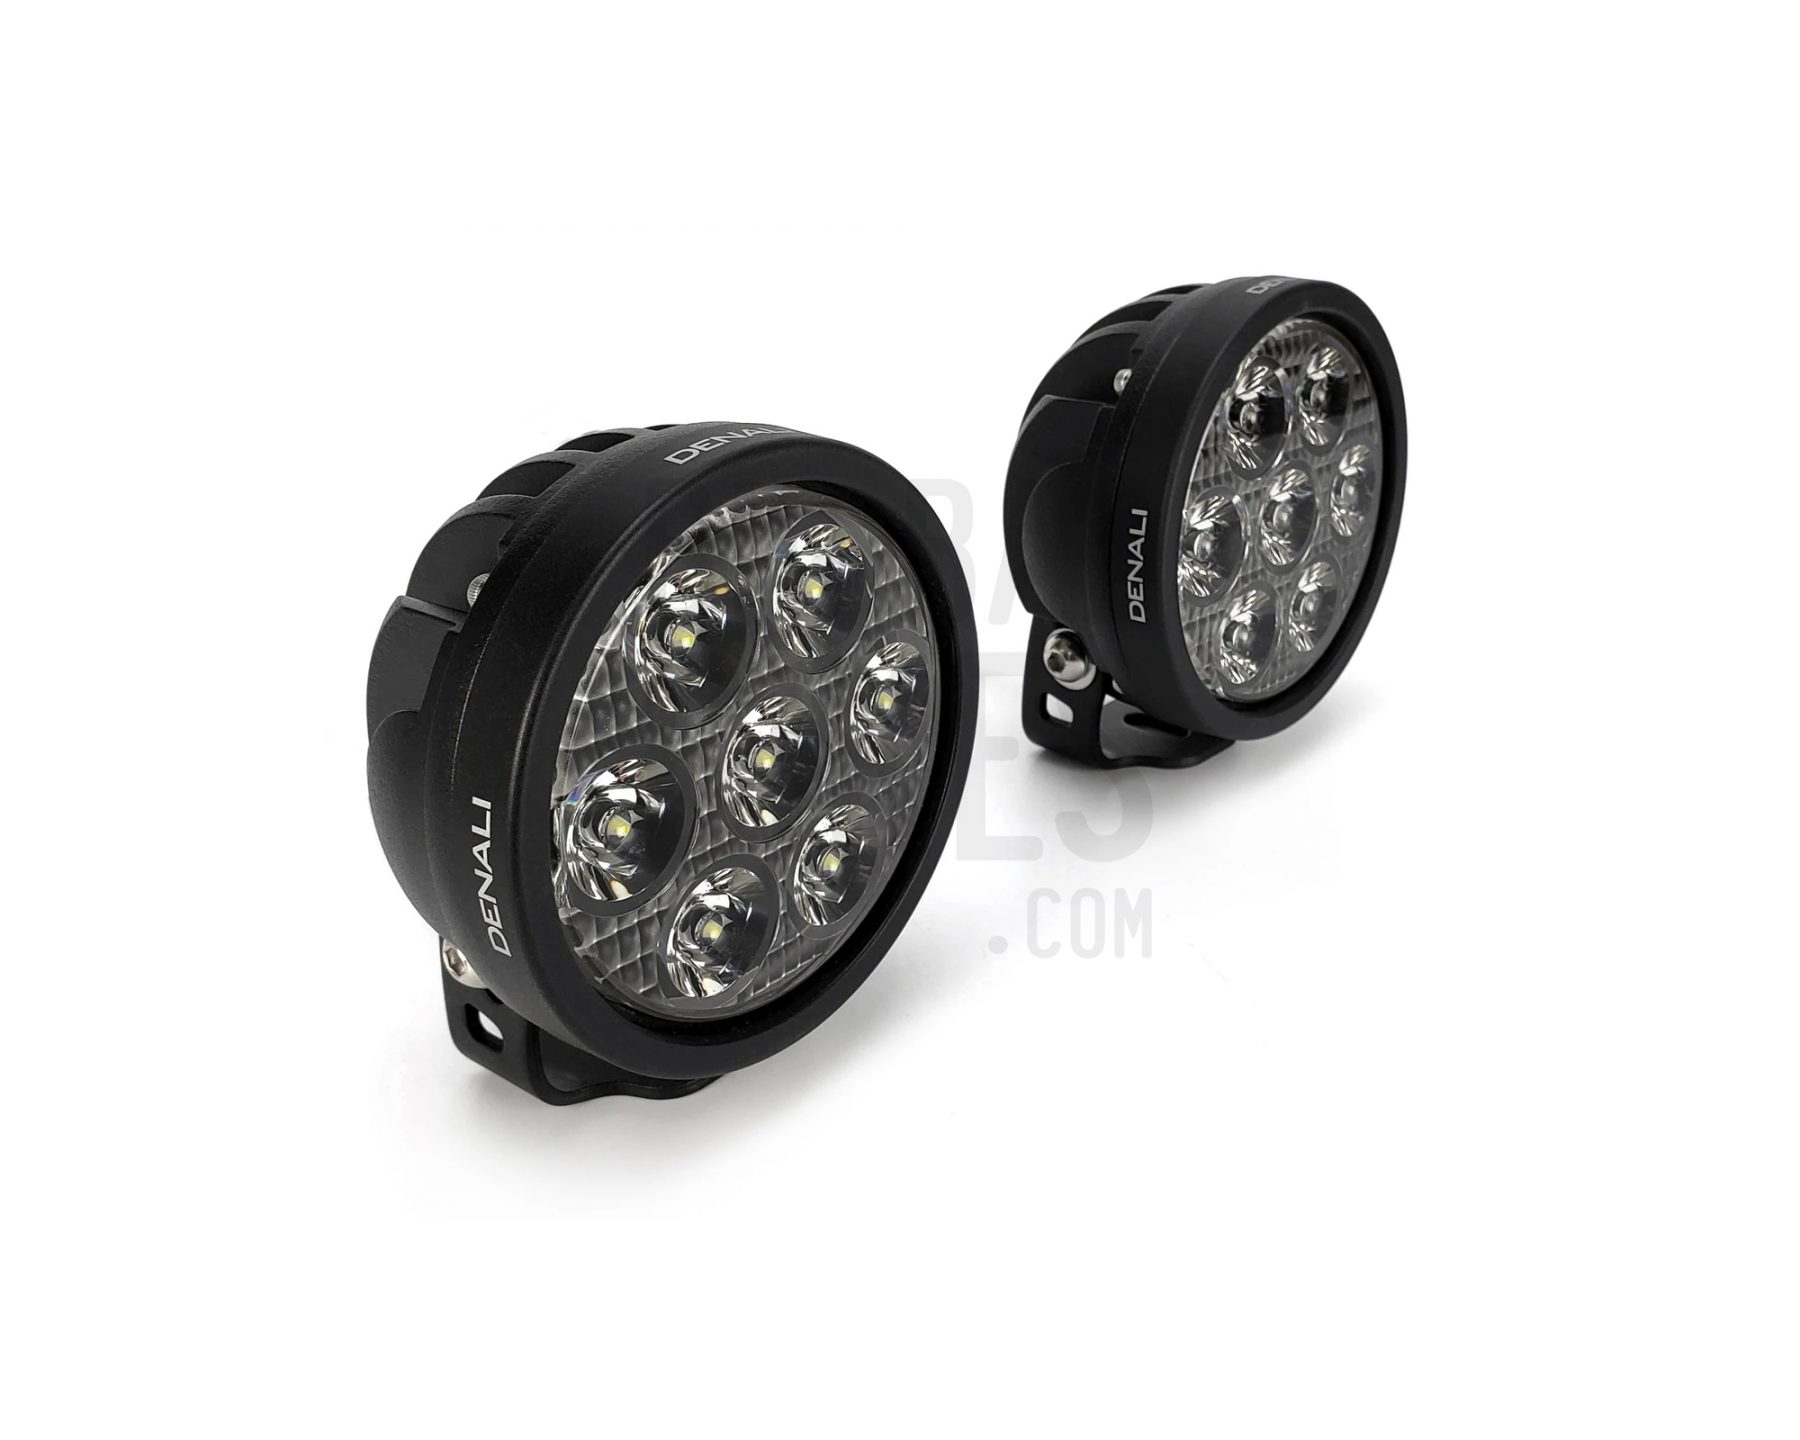 D7_LED_Light_1_2000x.jpg